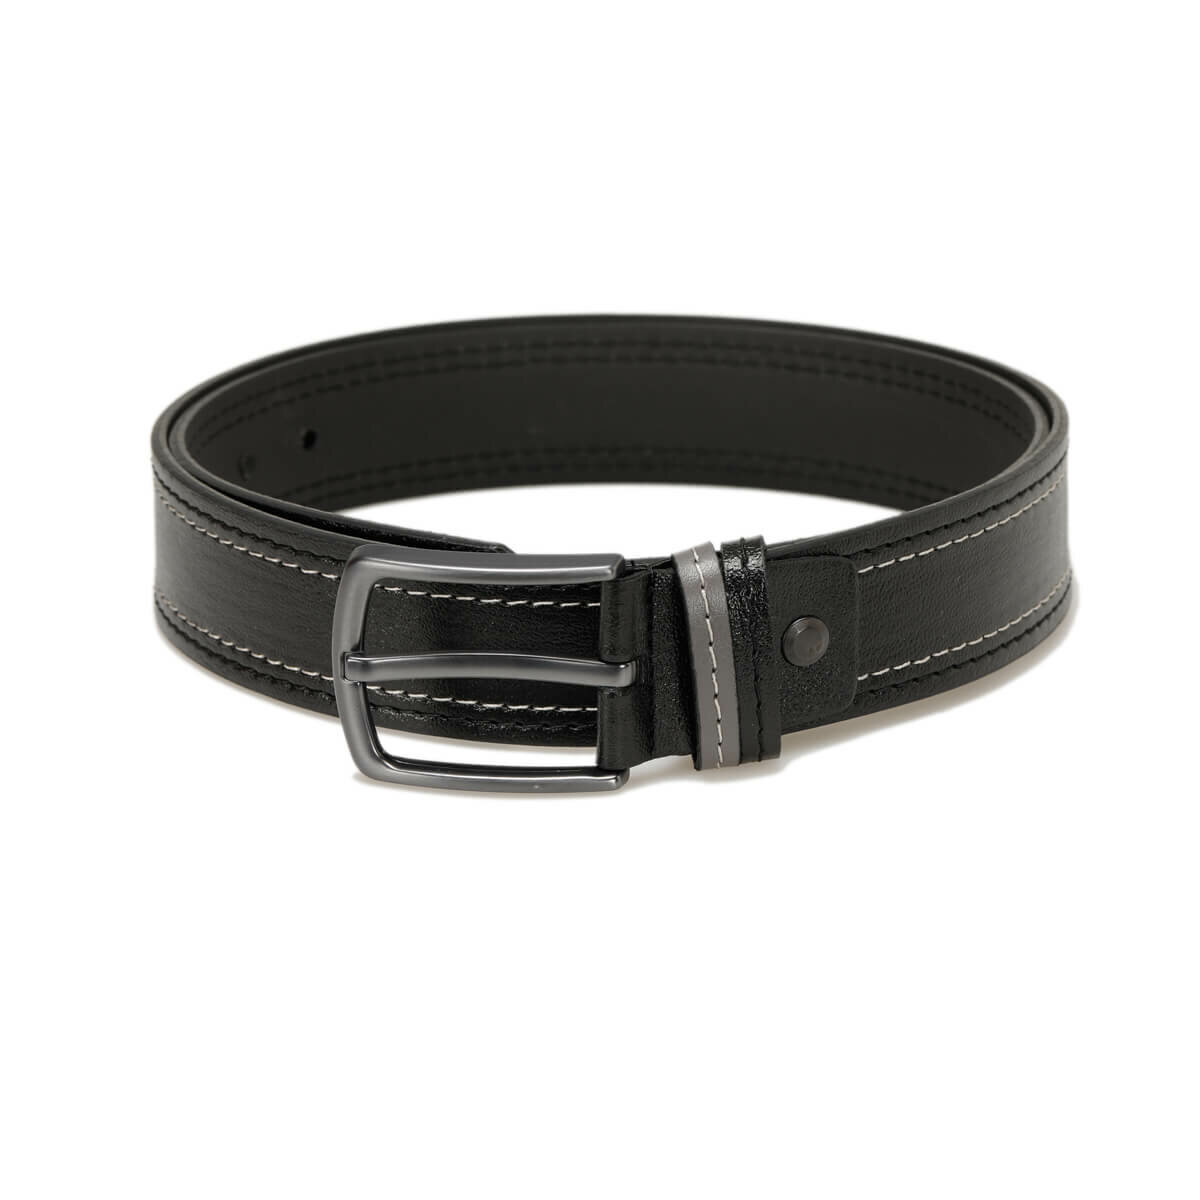 FLO MKNYL3405 Black Male Belt Oxide